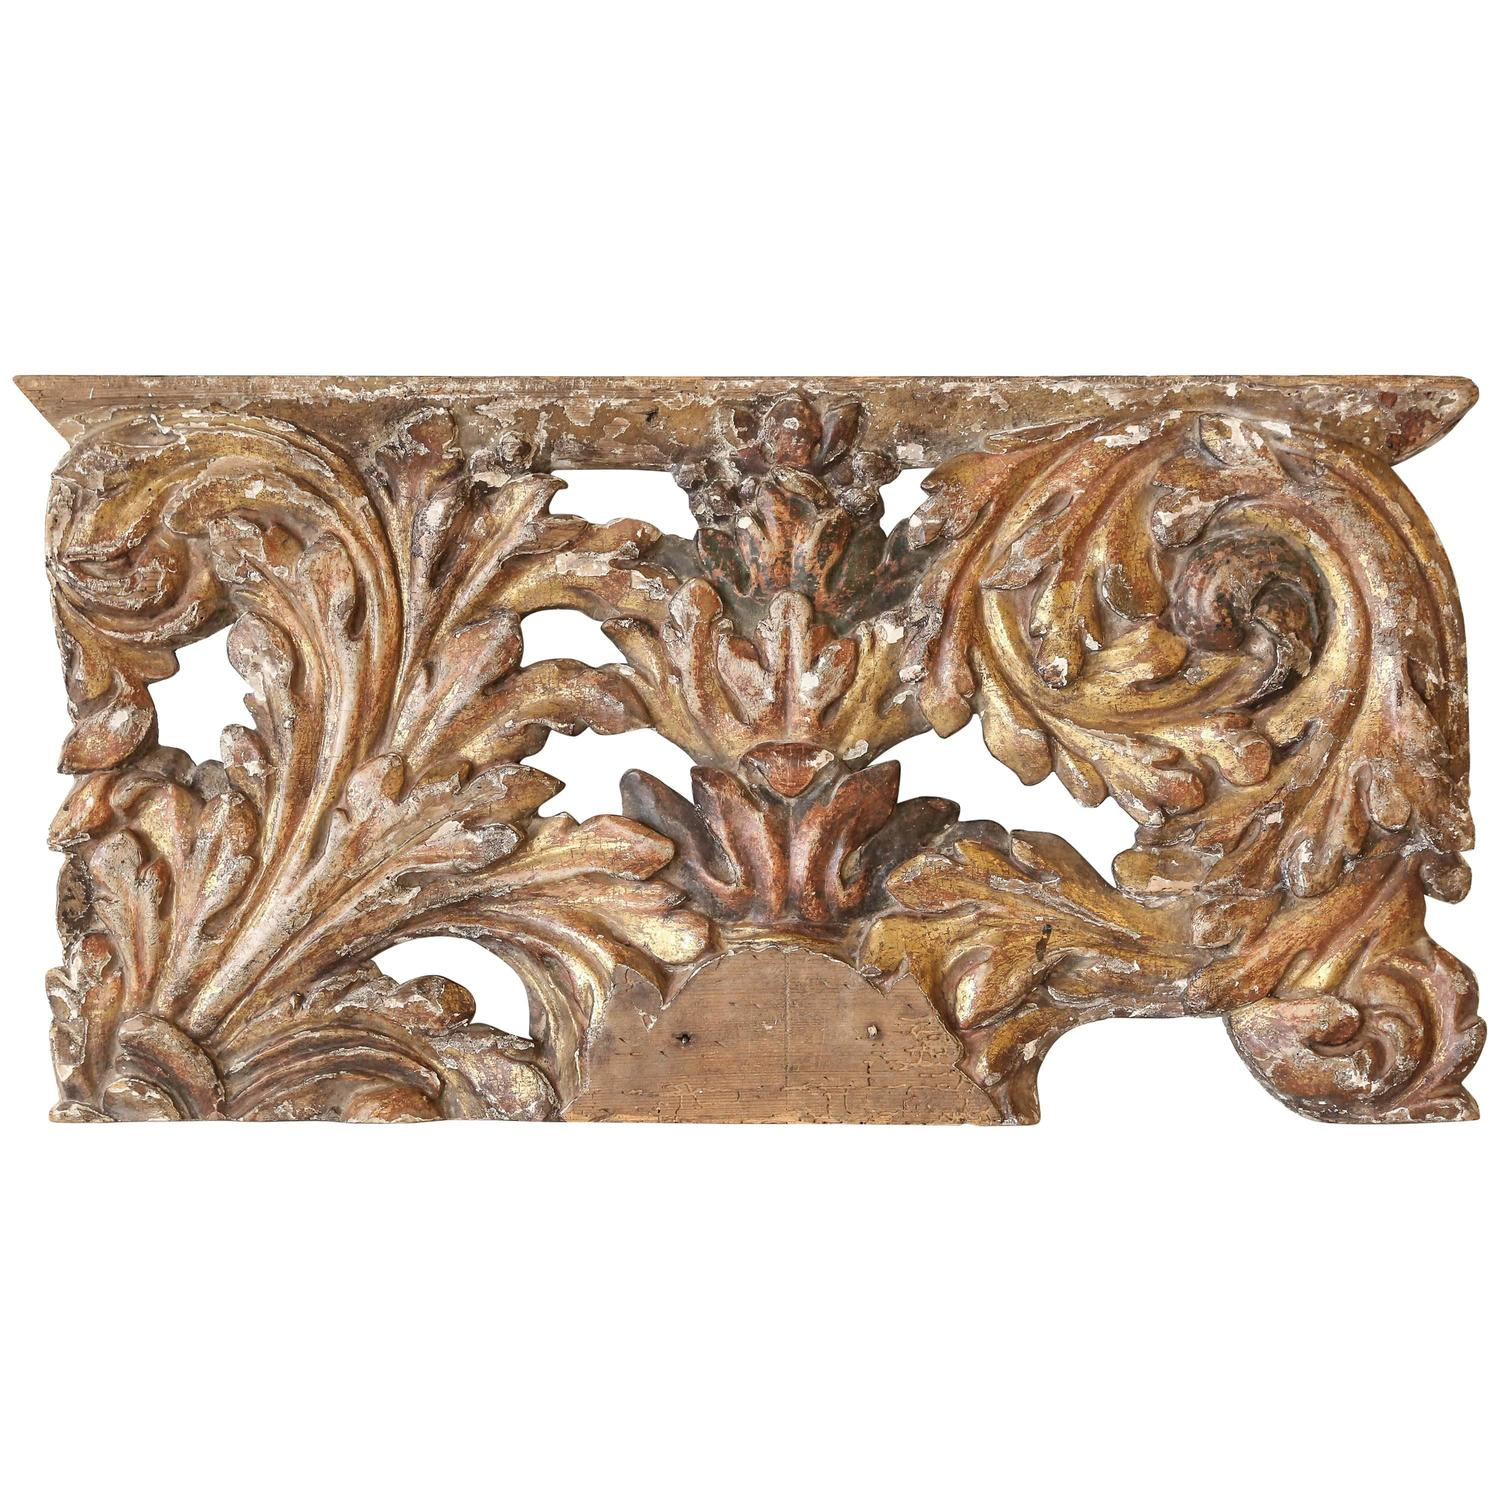 Decorative 18th Century Carved and Gilded Architectural ...